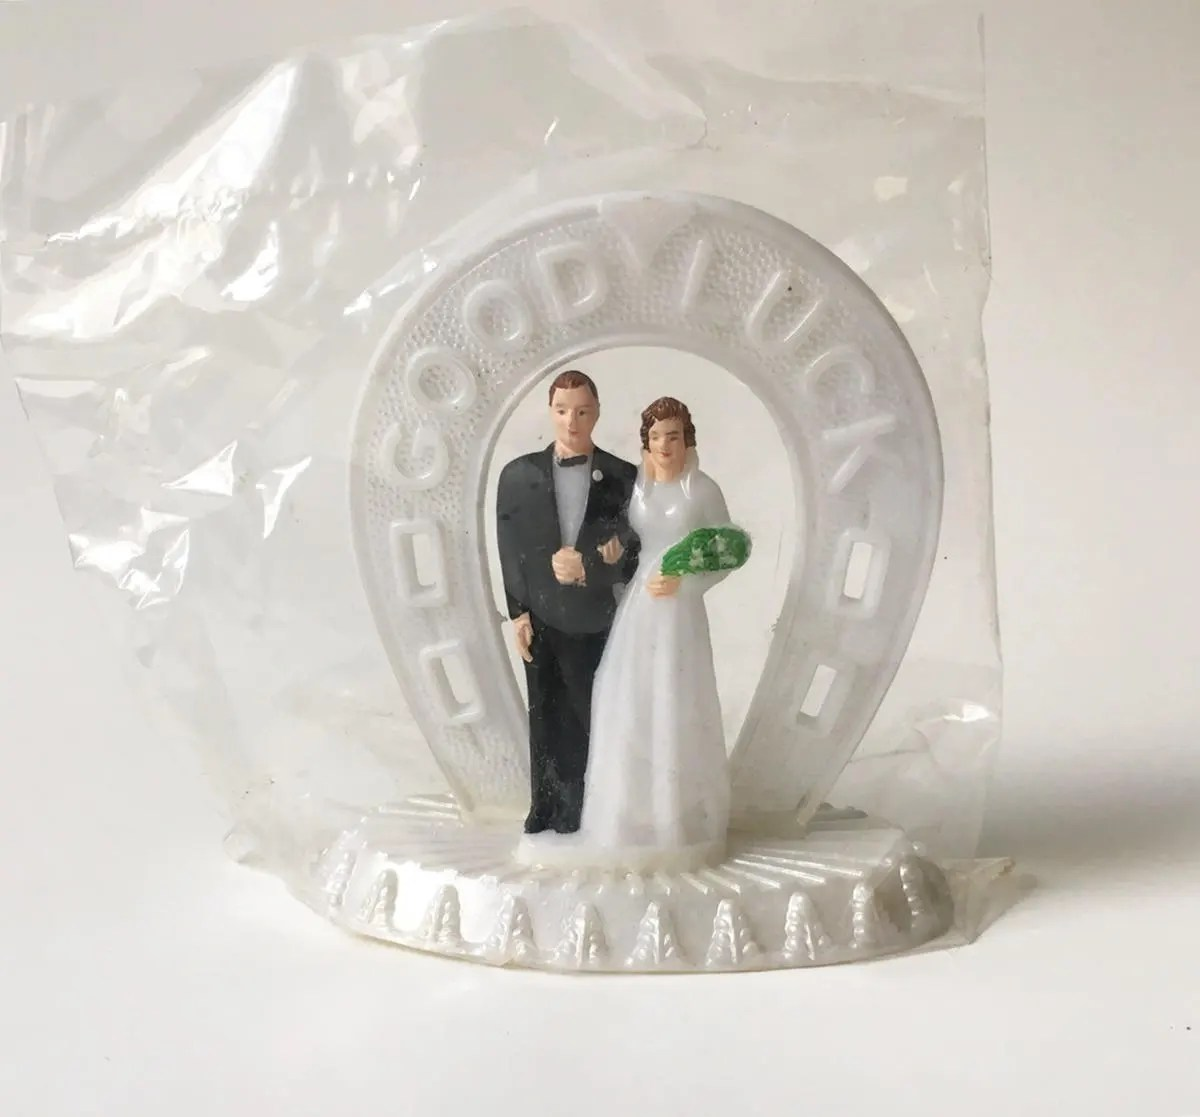 Vintage Wedding Cake Toppers   Etsy Cake Topper Bride and Groom Topper Wedding Cake Topper Vintage New Old  Stock Good Luck cake topper 1960s New in package